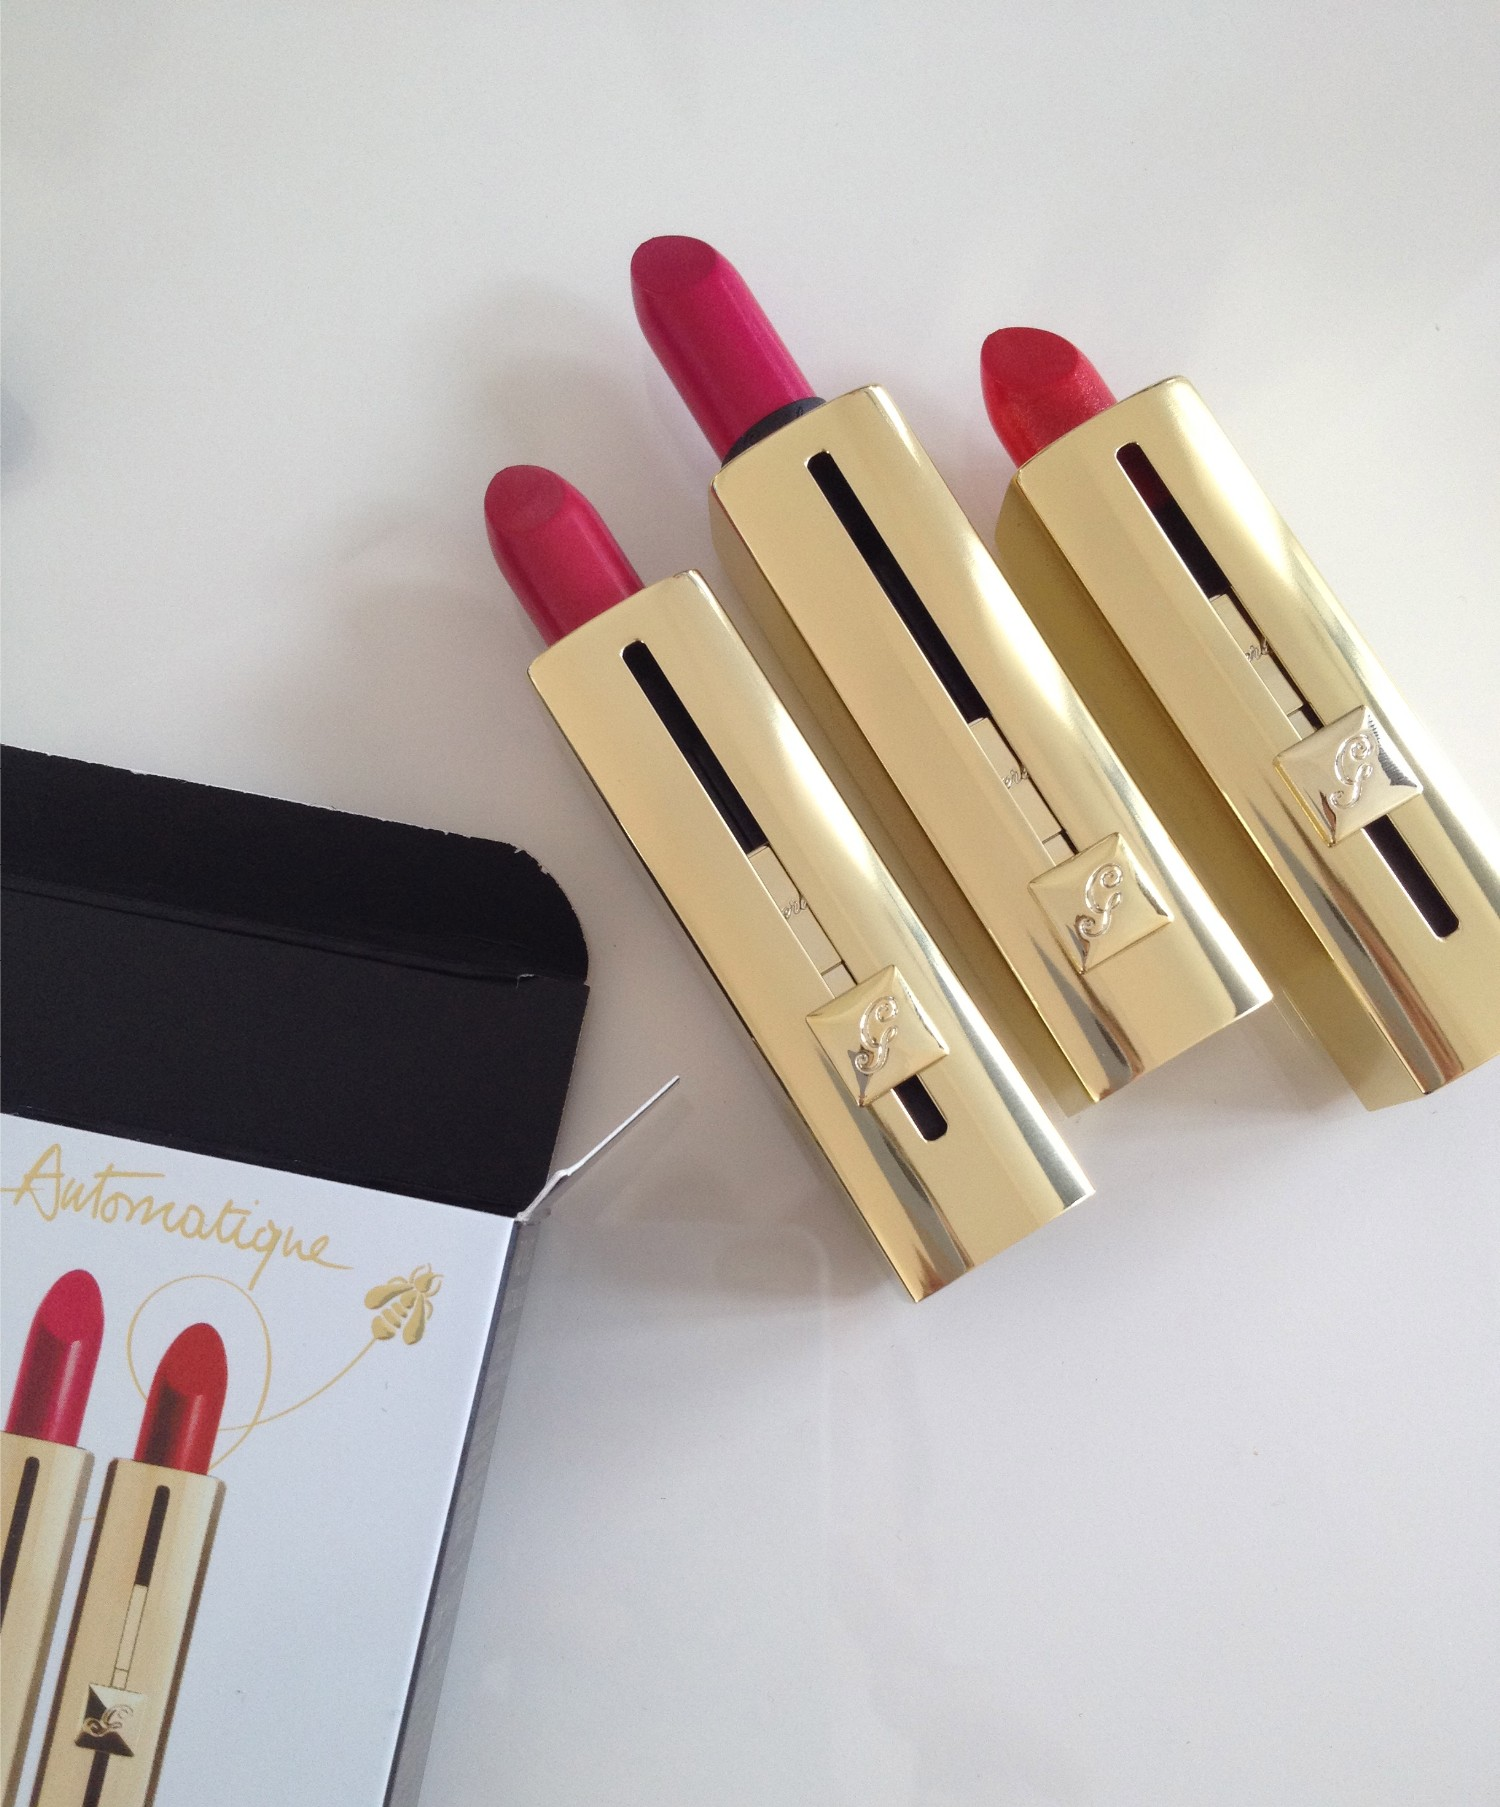 Behold Guerlain's Rouge Automatique lipsticks which are cap free meaning you can apply with one hand! Genius.